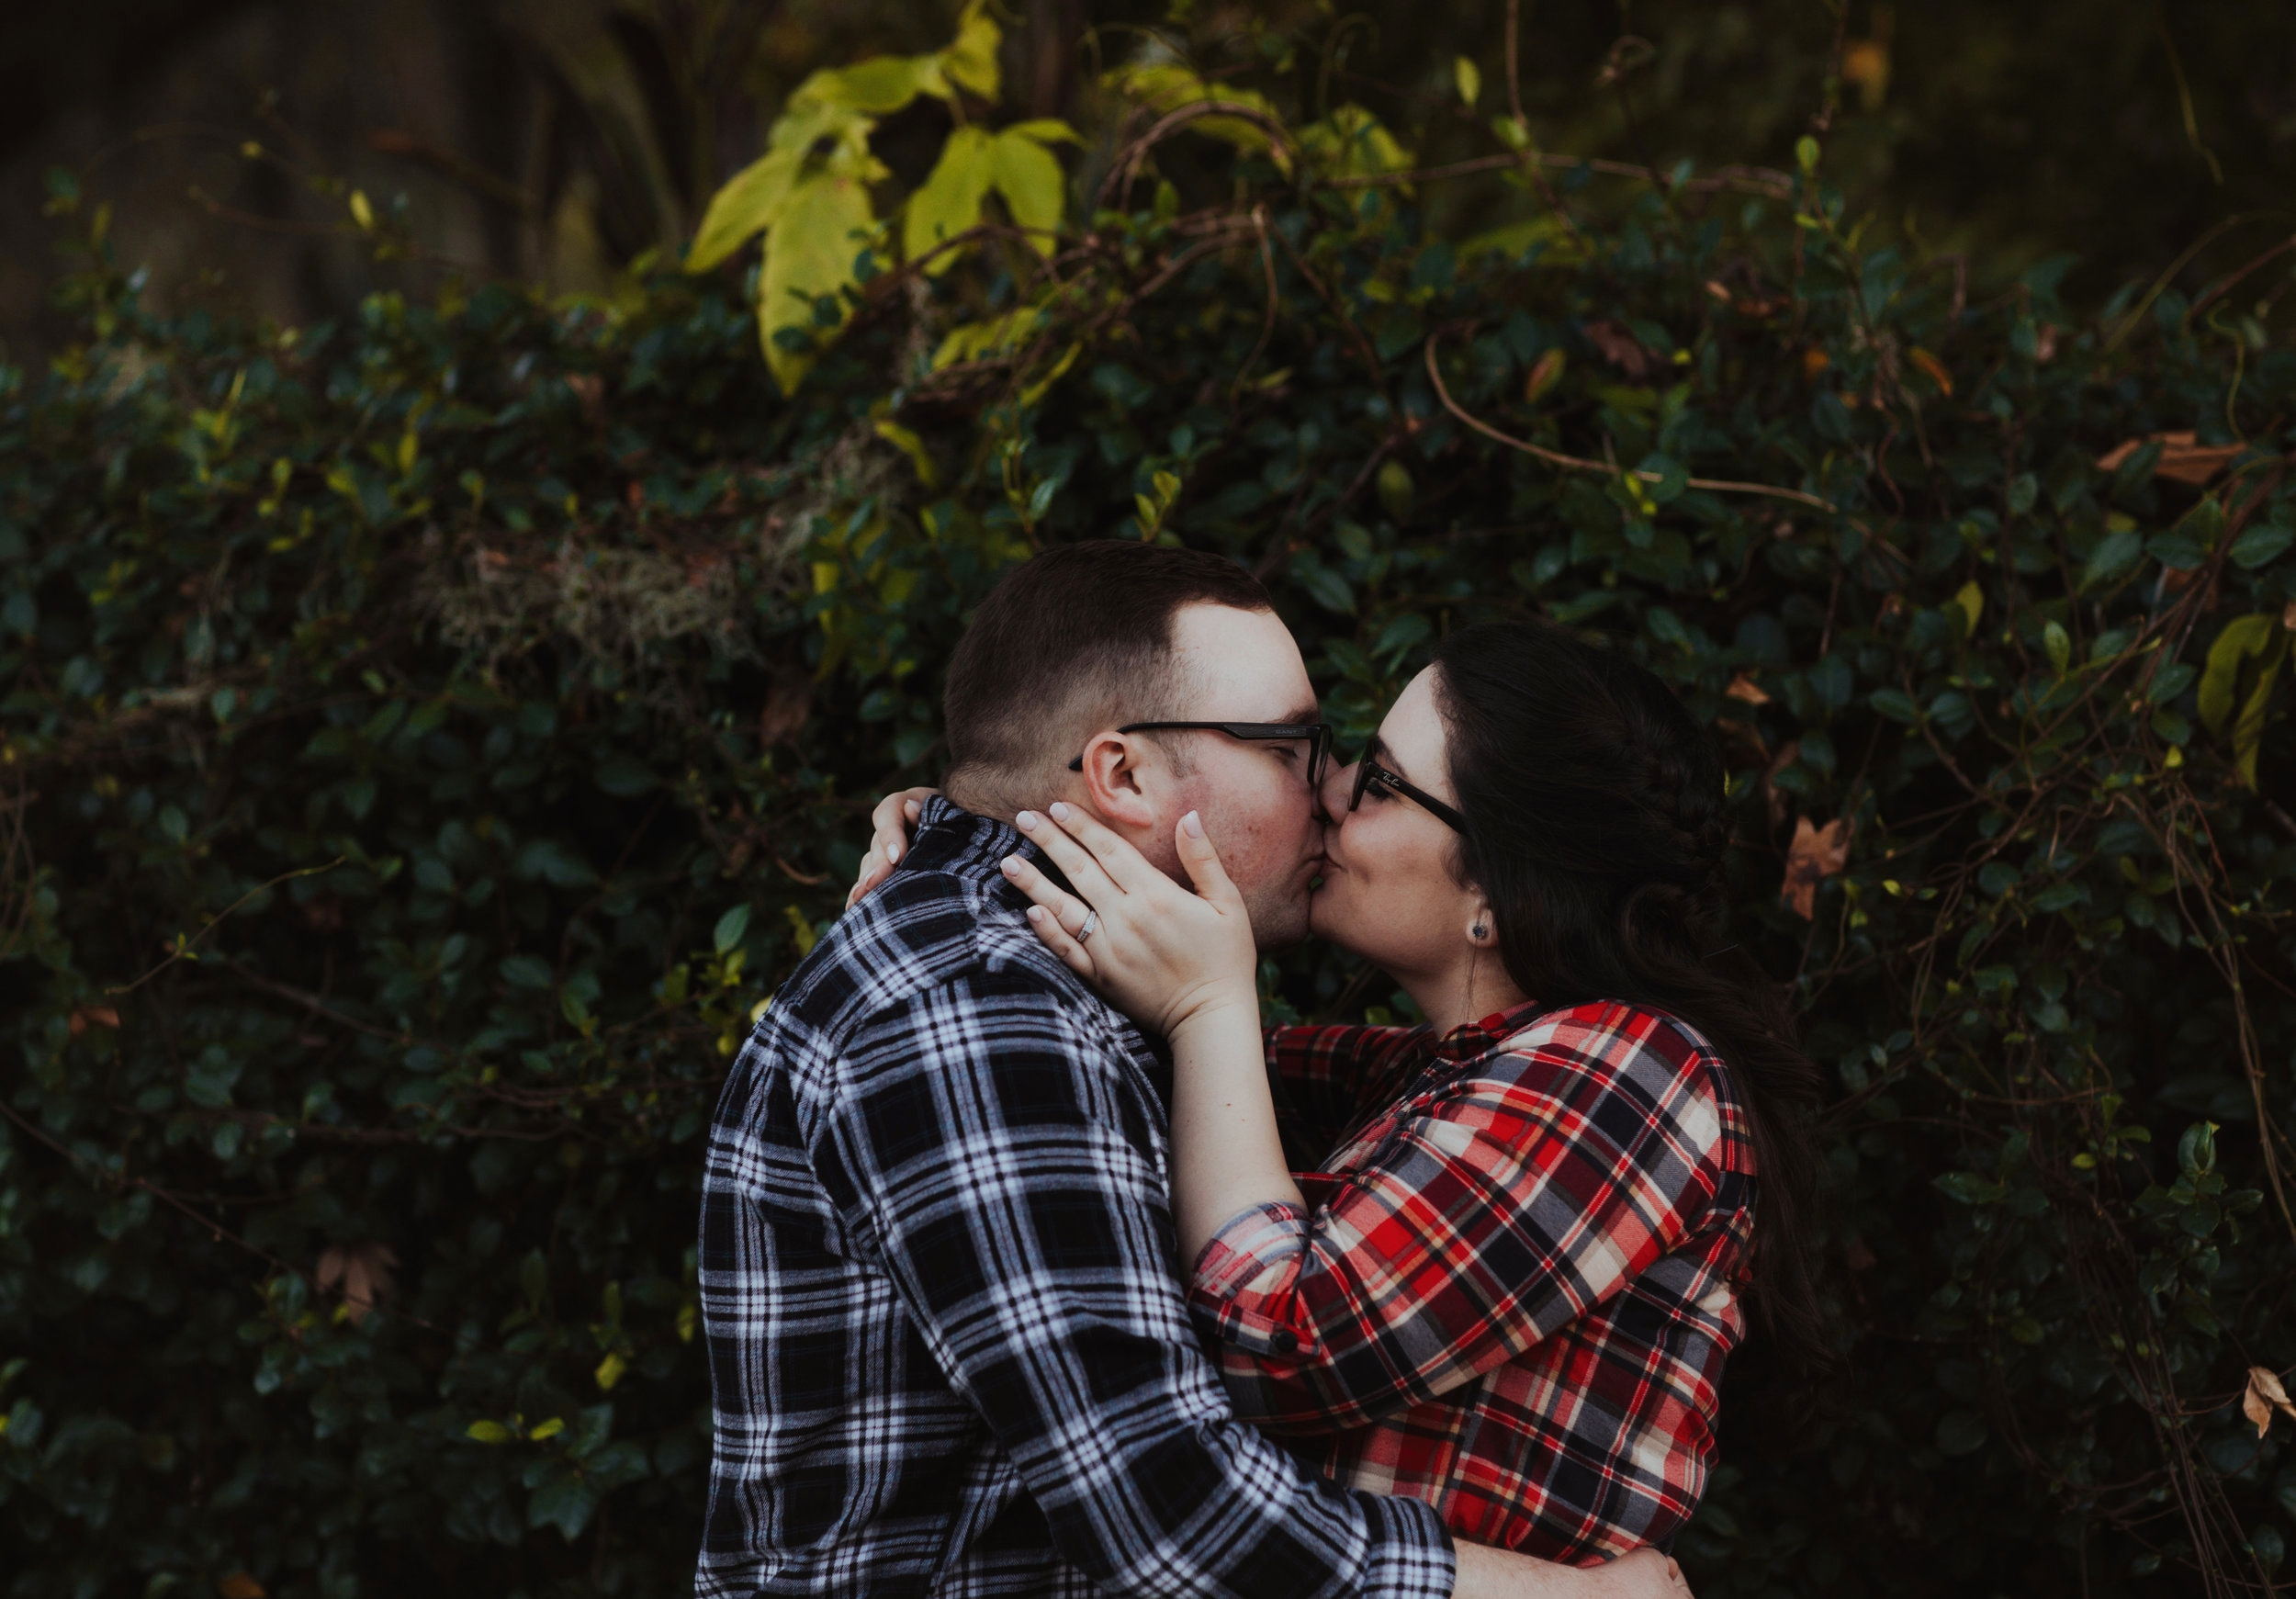 Engagement Session | Vanessa Boy |Vanessaboy.com | orlando,fl-228.com |final.jpg